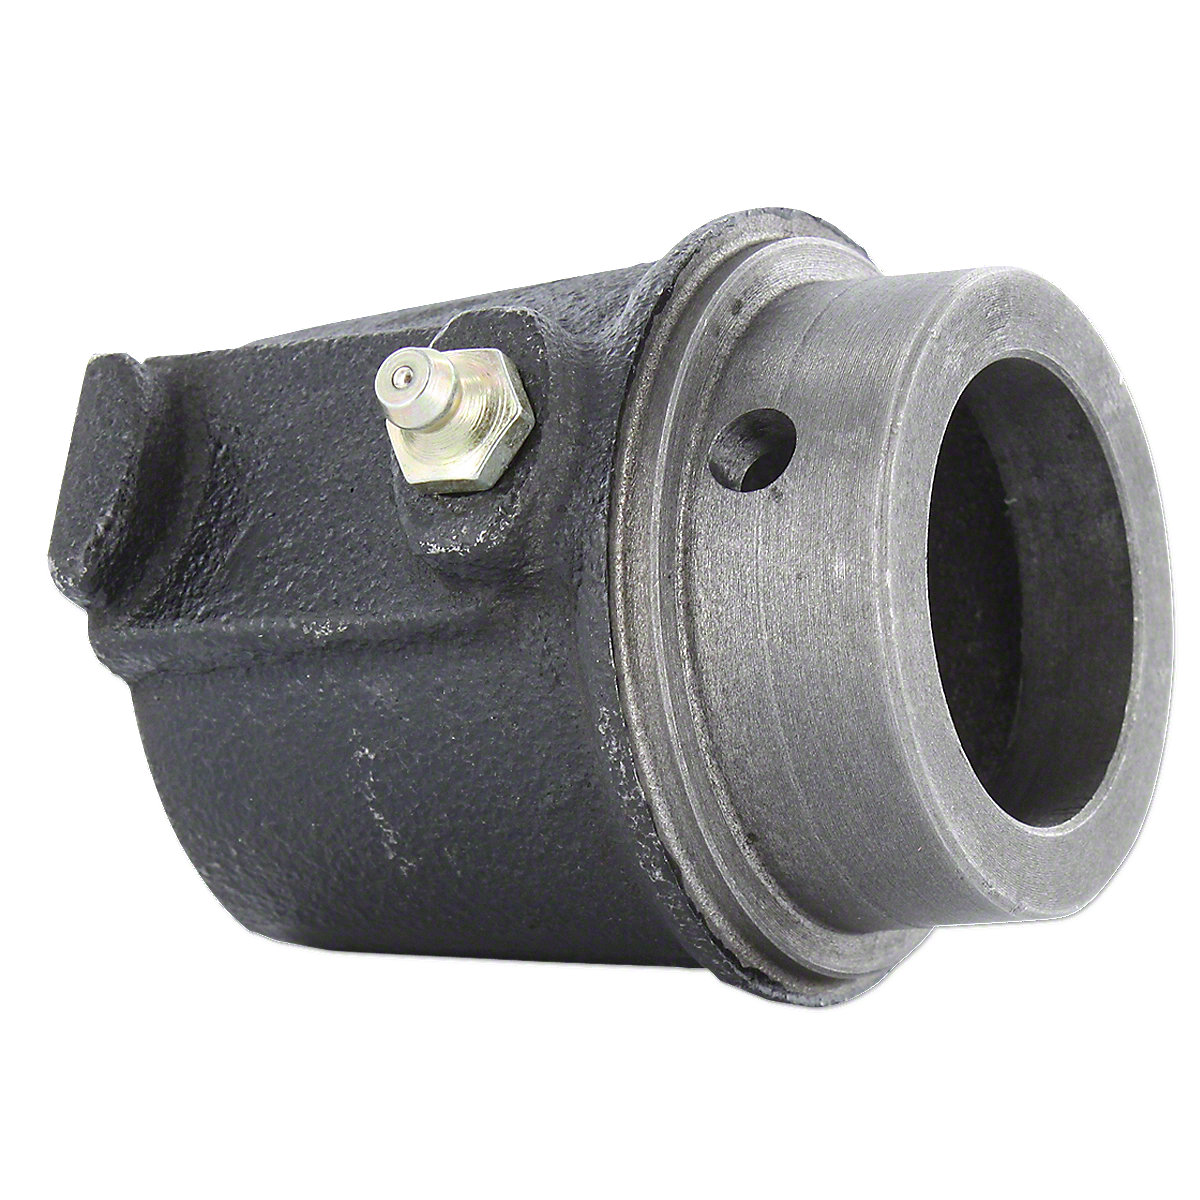 IHS1155Clutch Release Throw-out Bearing Carrier